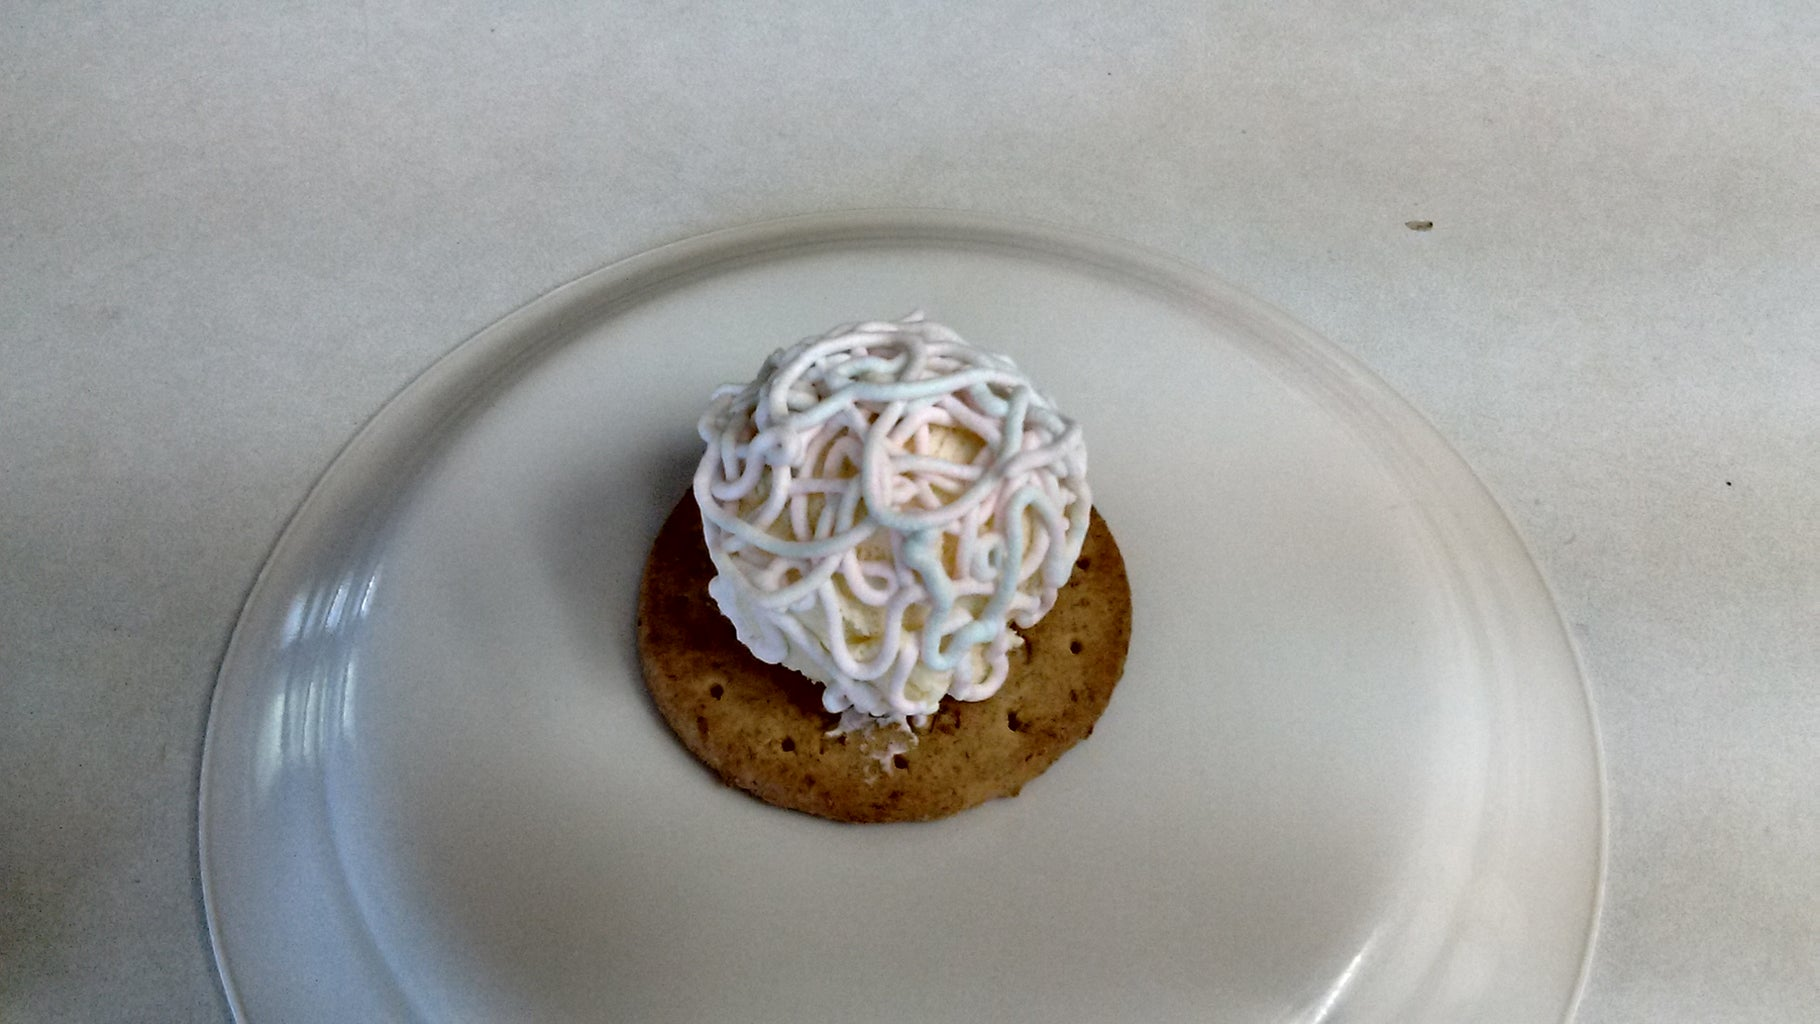 Pipe on the Whipped Cream